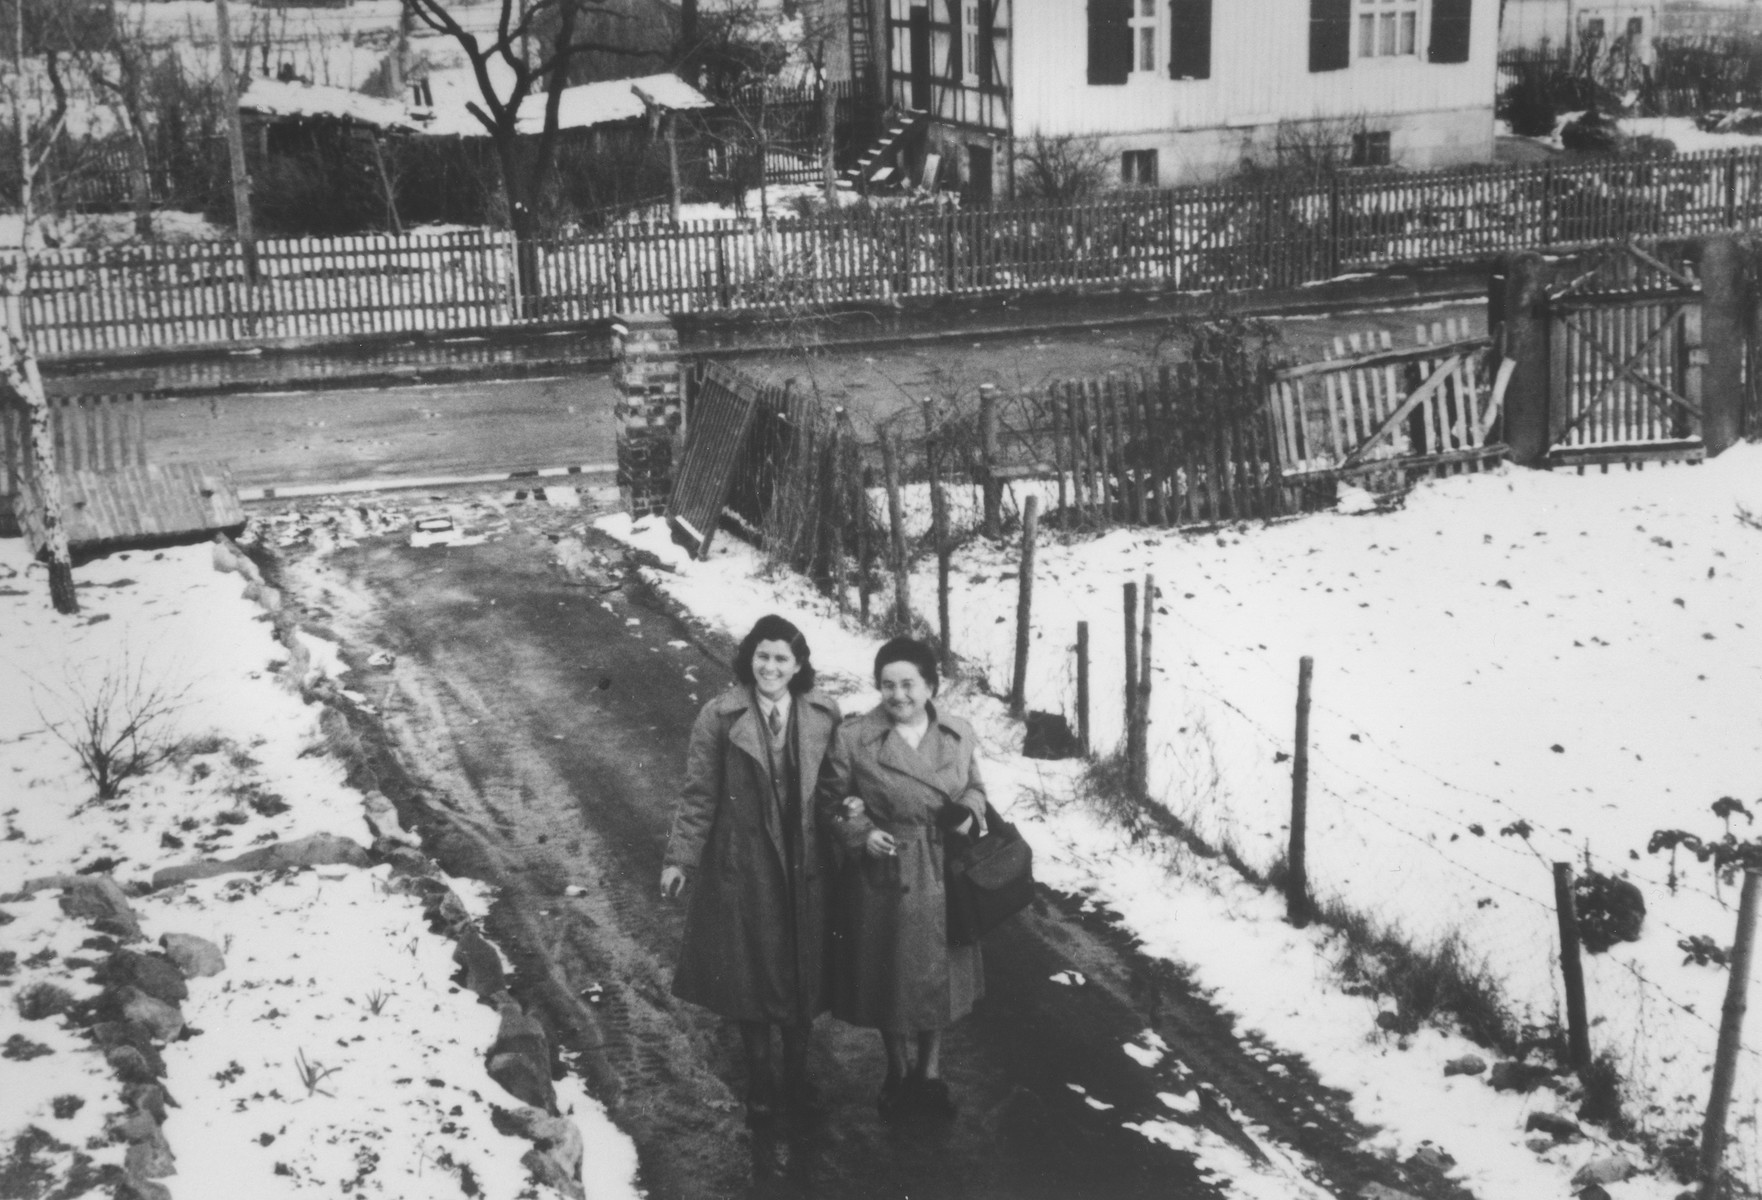 Two Jewish female relief workers walk along a path in the Herzog displaced persons camp.  Pictured on the left is Miriam, a sabra sent by the Jewish Agency for Palestine to teach Hebrew to Jewish DPs.  On the right is Mrs. Greenberg from the American Jewish Joint Distribution Committee in New York.